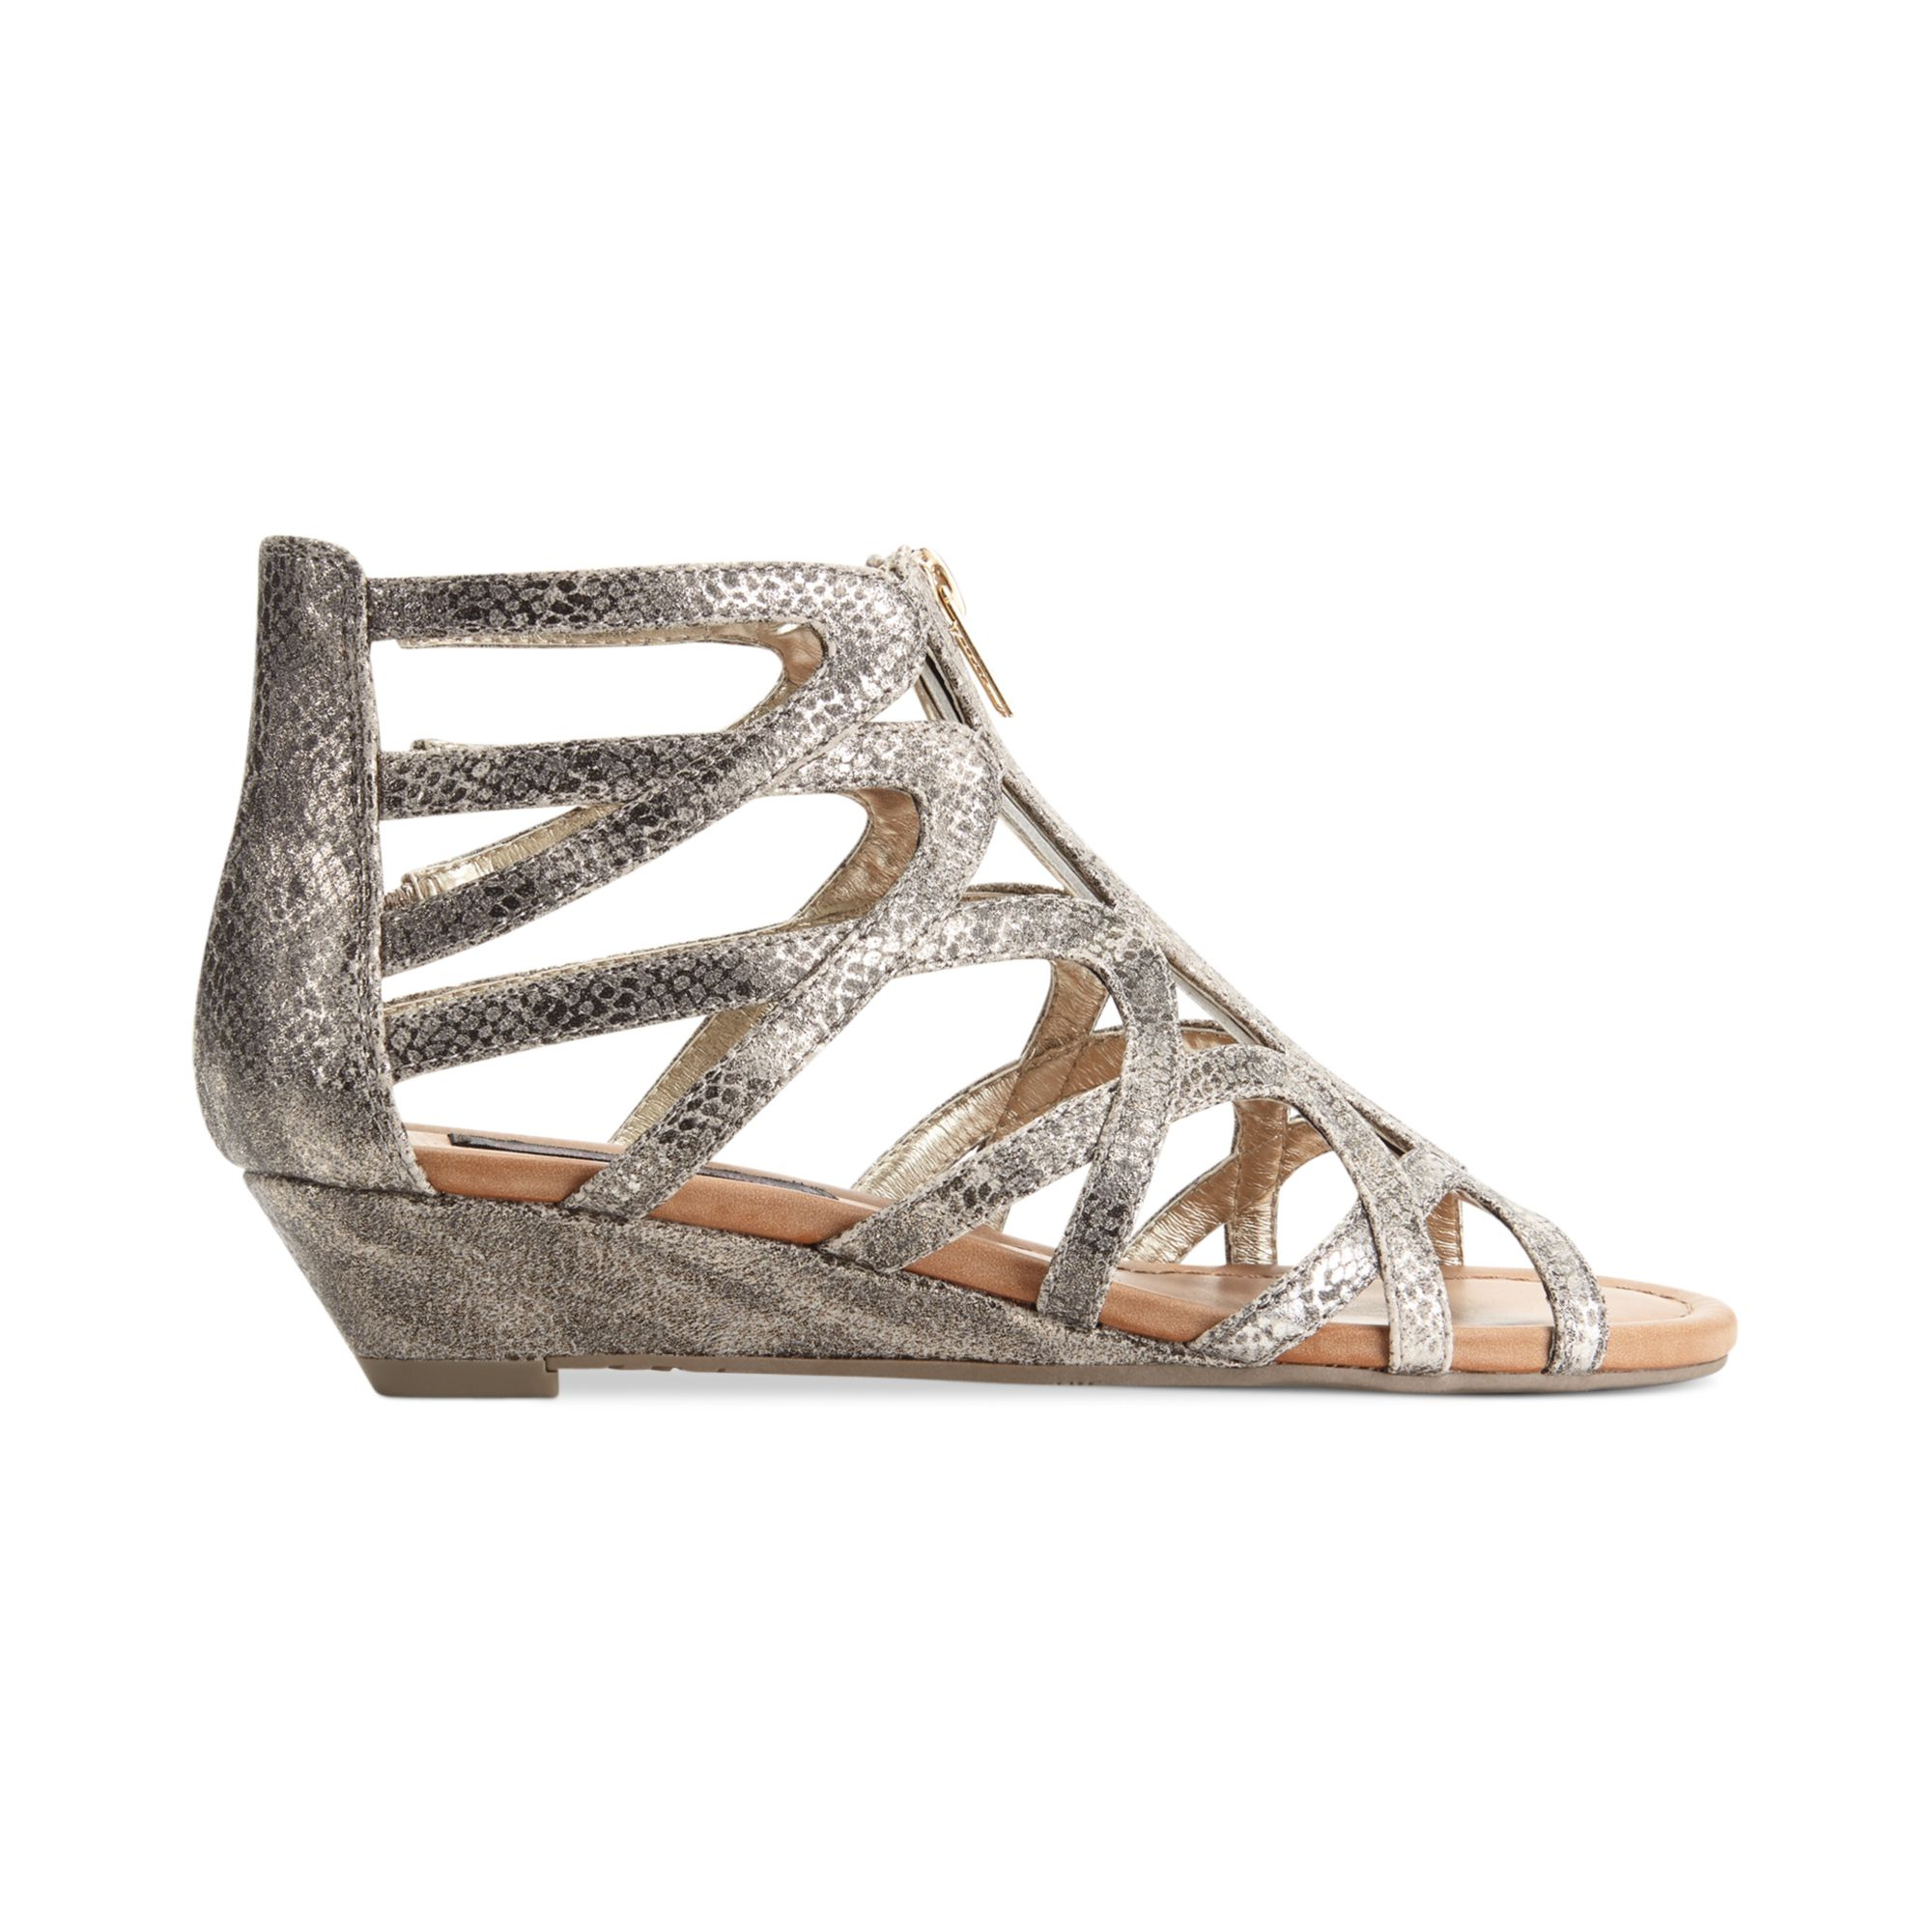 Is Material Girl Shoes Metallic Gold Or Gold